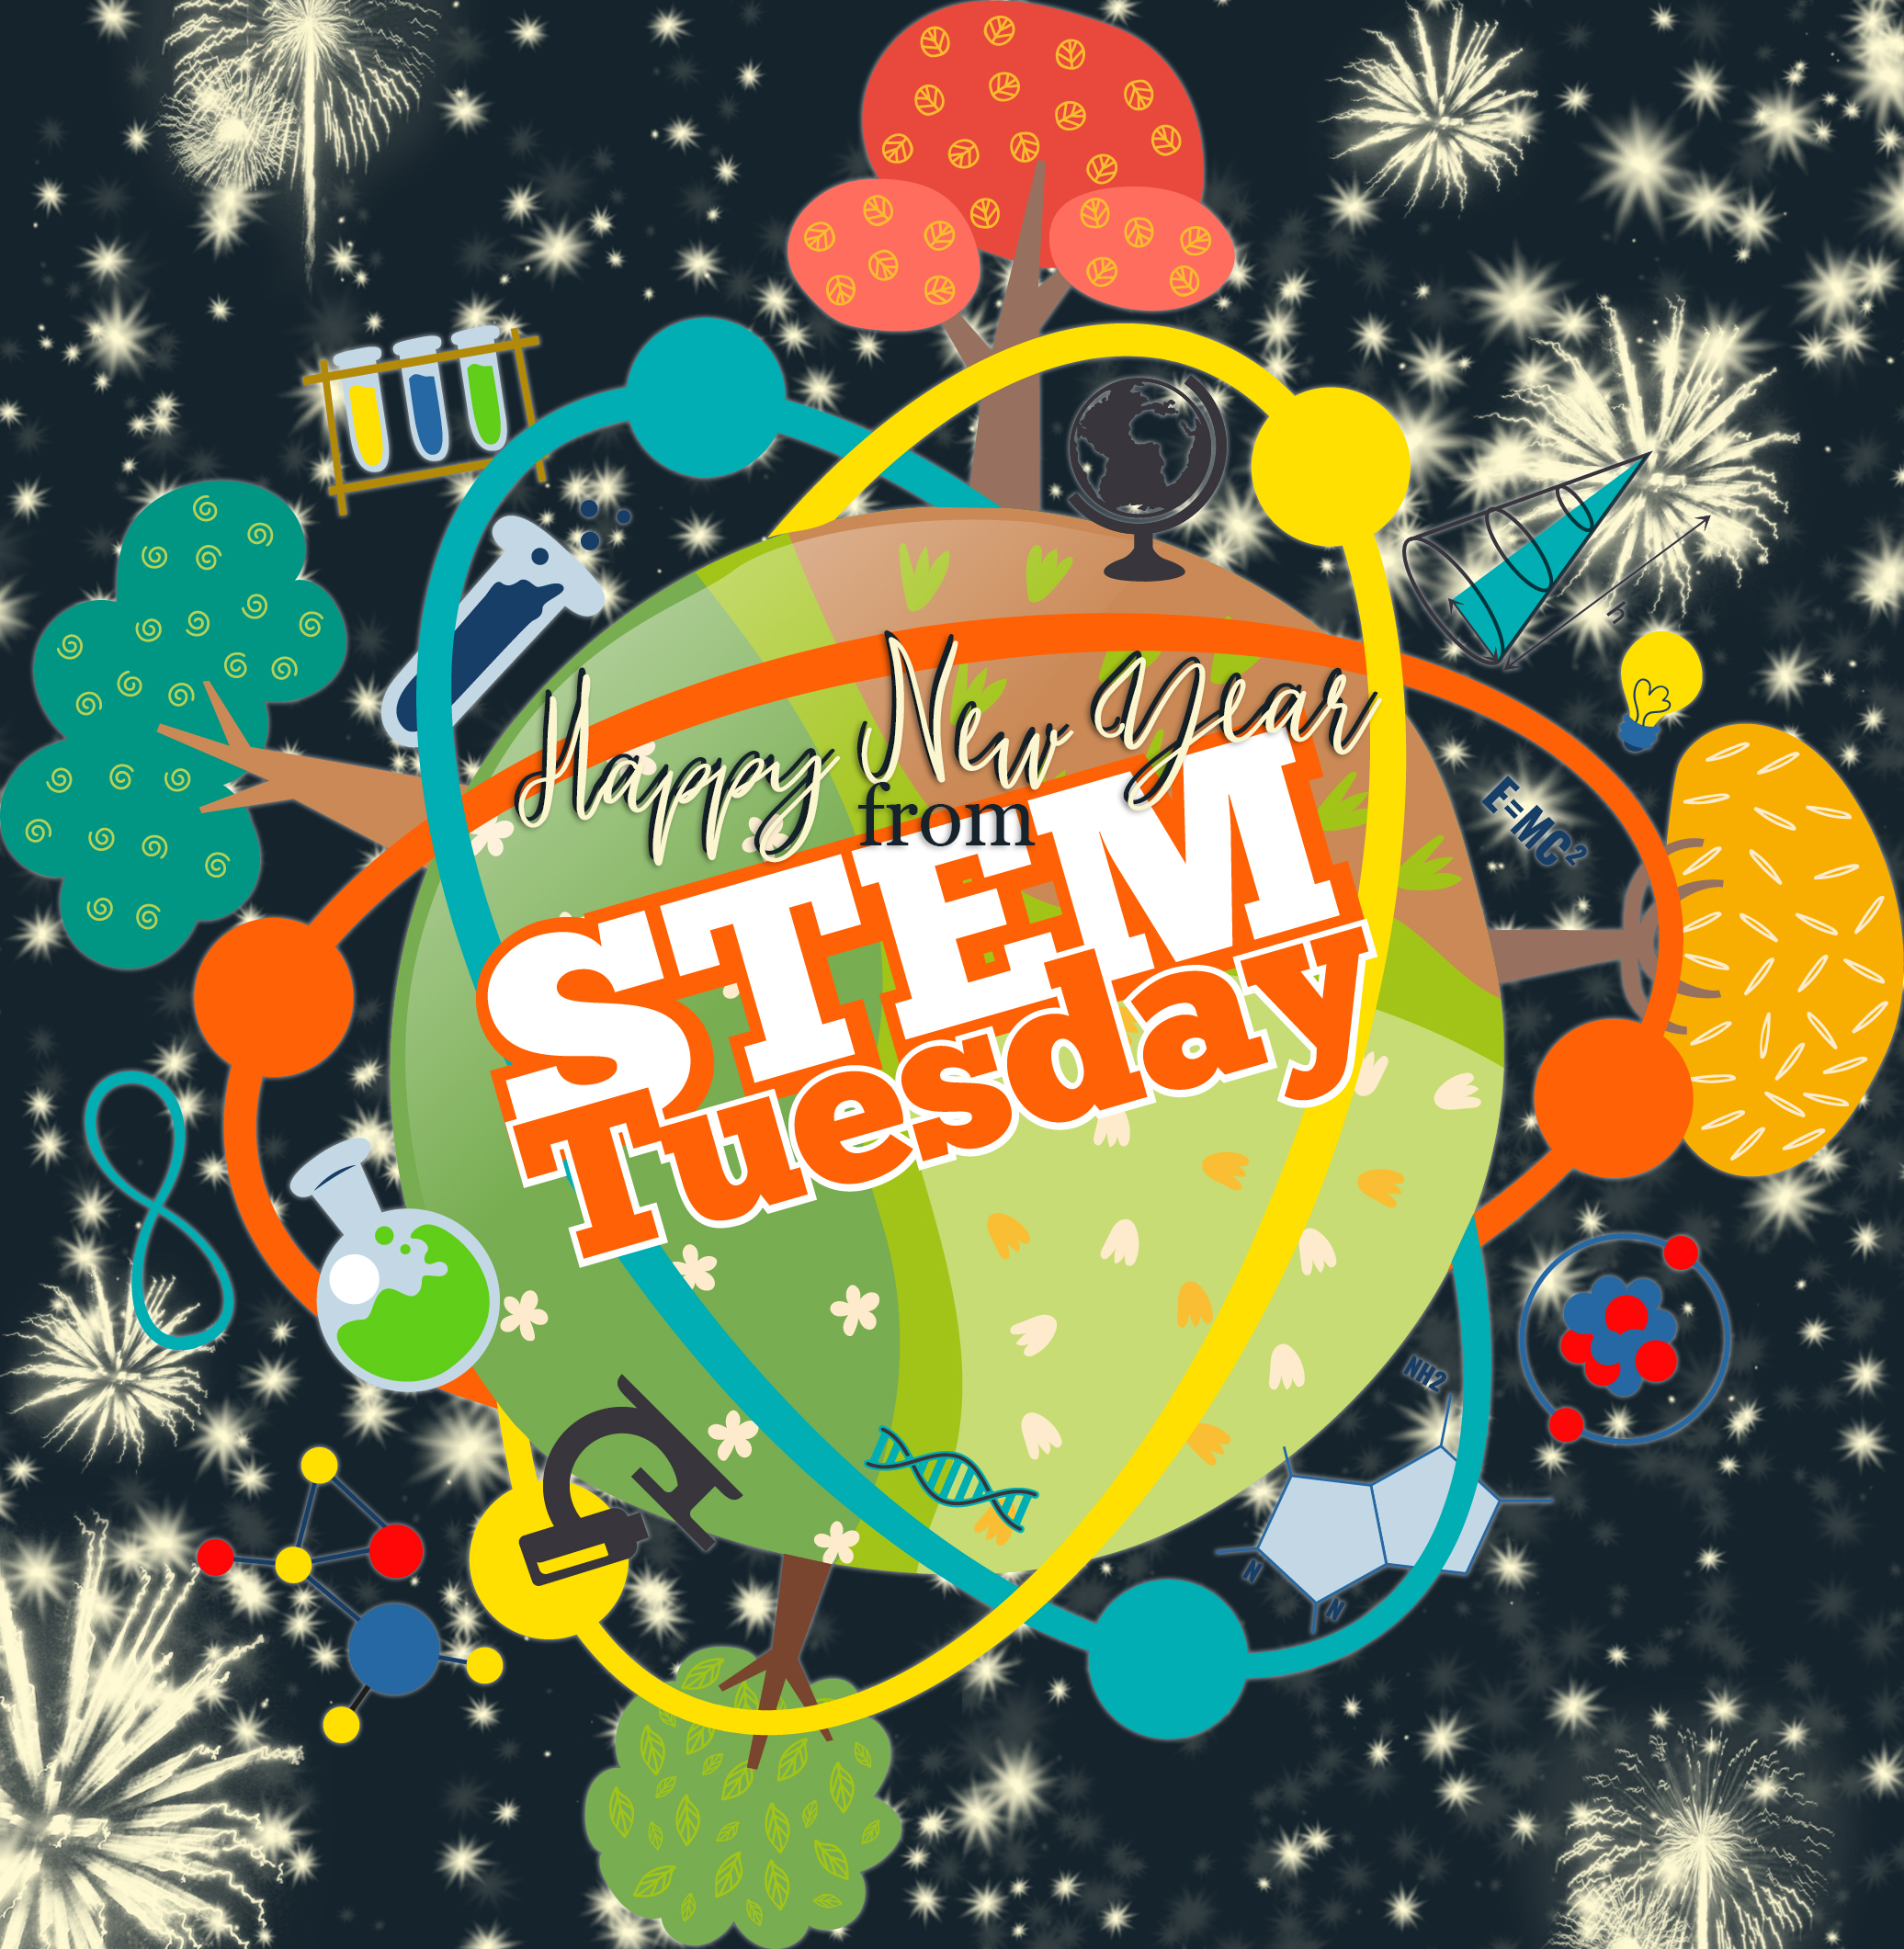 STEM Tuesday New Year's Eve 2019 Special Edition!